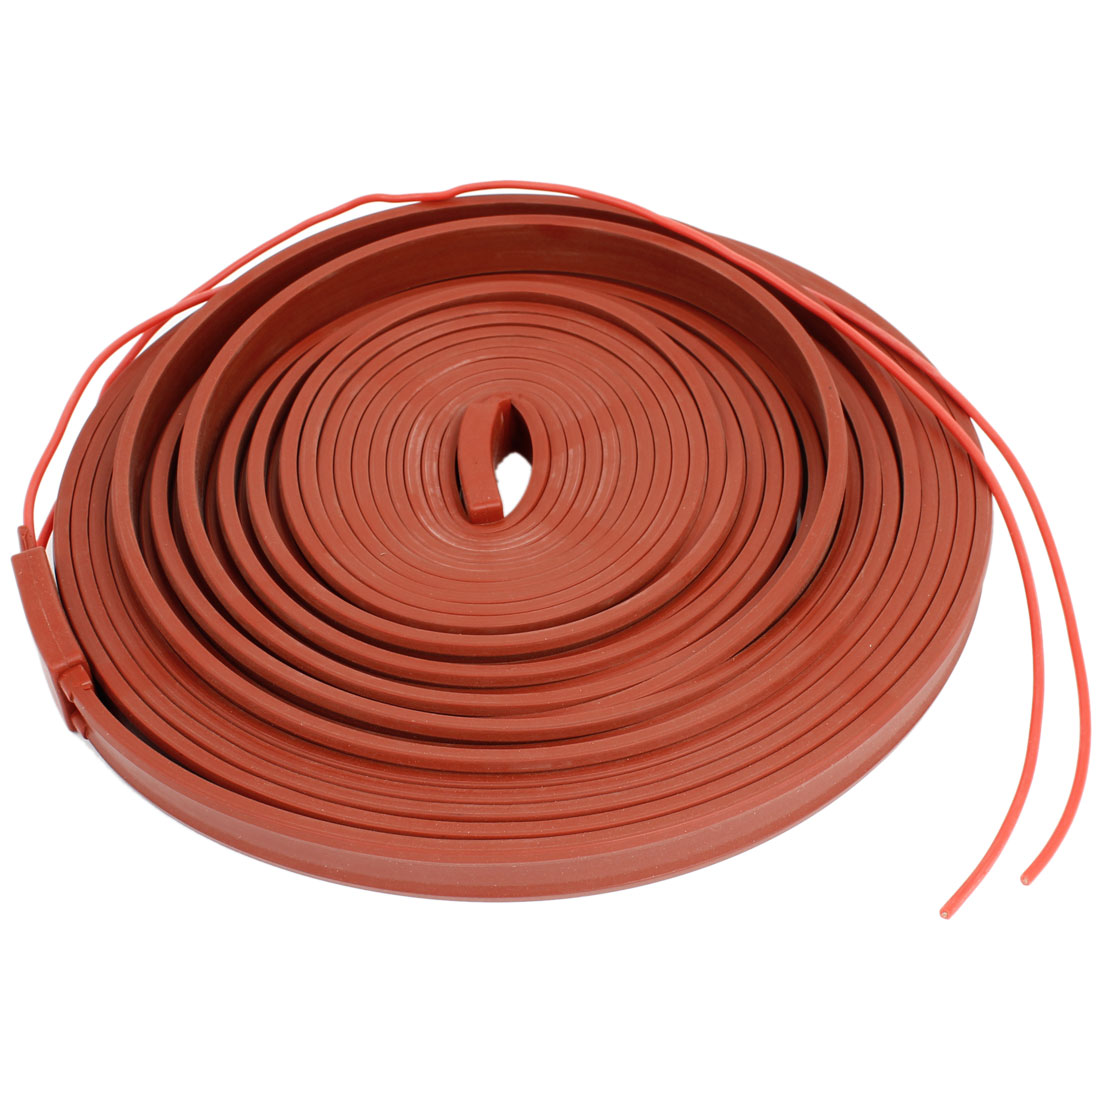 380V Red Freezing Protection Silicone Waterproof Heater Strip 10M x 15mm